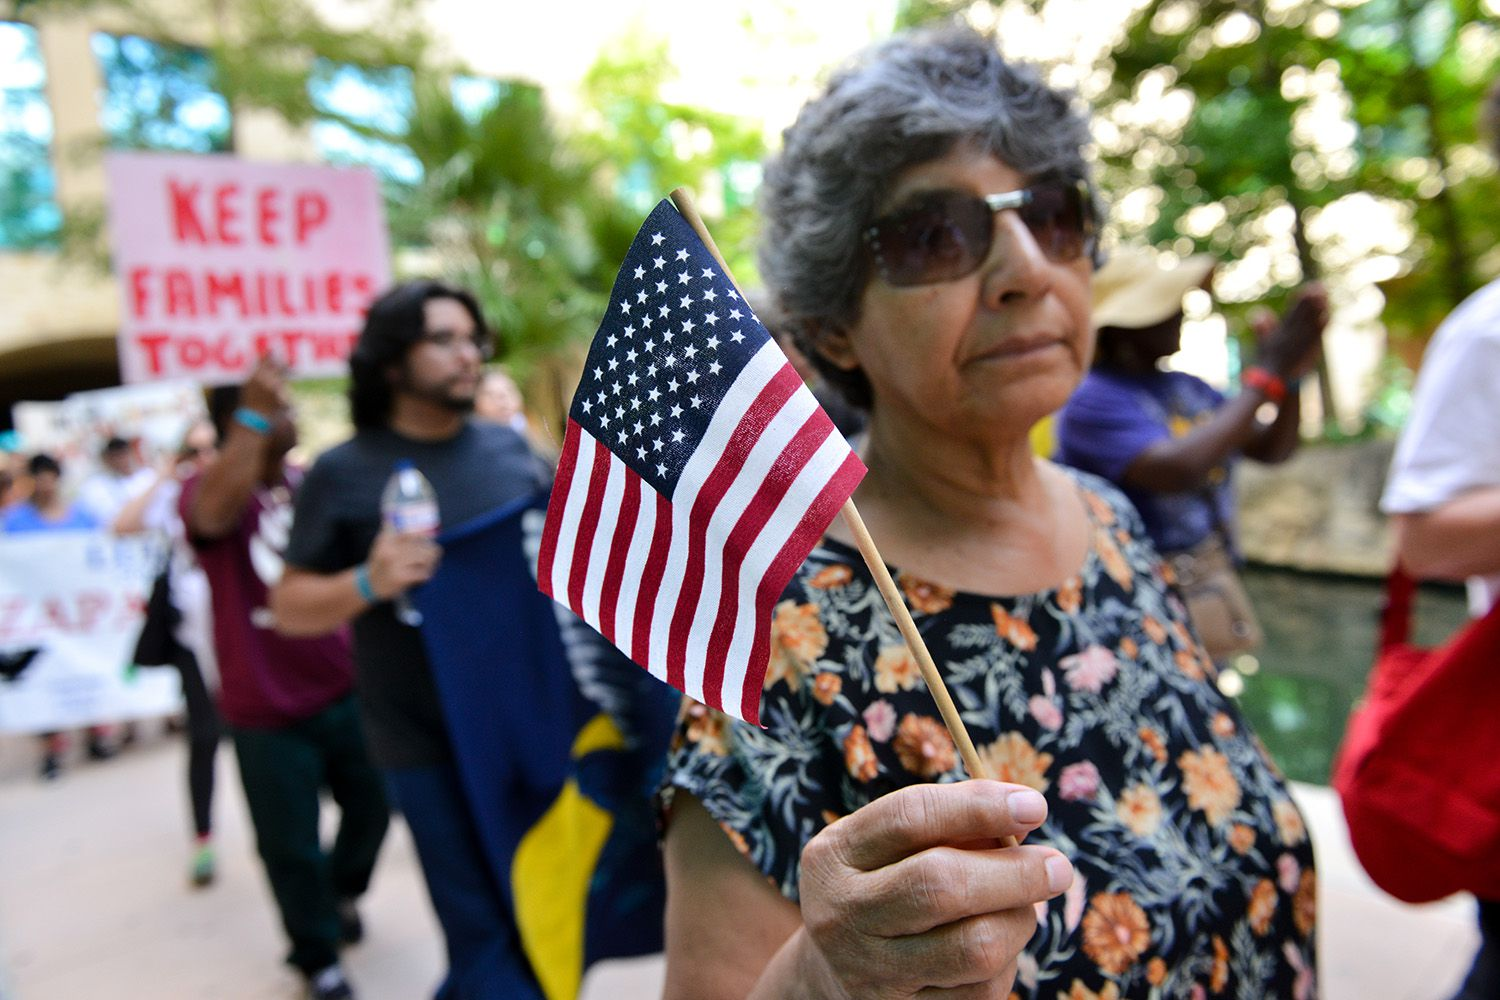 A woman demonstrating against Senate Bill 4, the so-called sanctuary cities law, waves a flag during a march near the San Antonio Riverwalk on June 26, 2017. U.S. District Judge Orlando Garcia is hearing arguments from Texas cities and counties challenging the bill, signed into law by Gov. Greg Abbott.